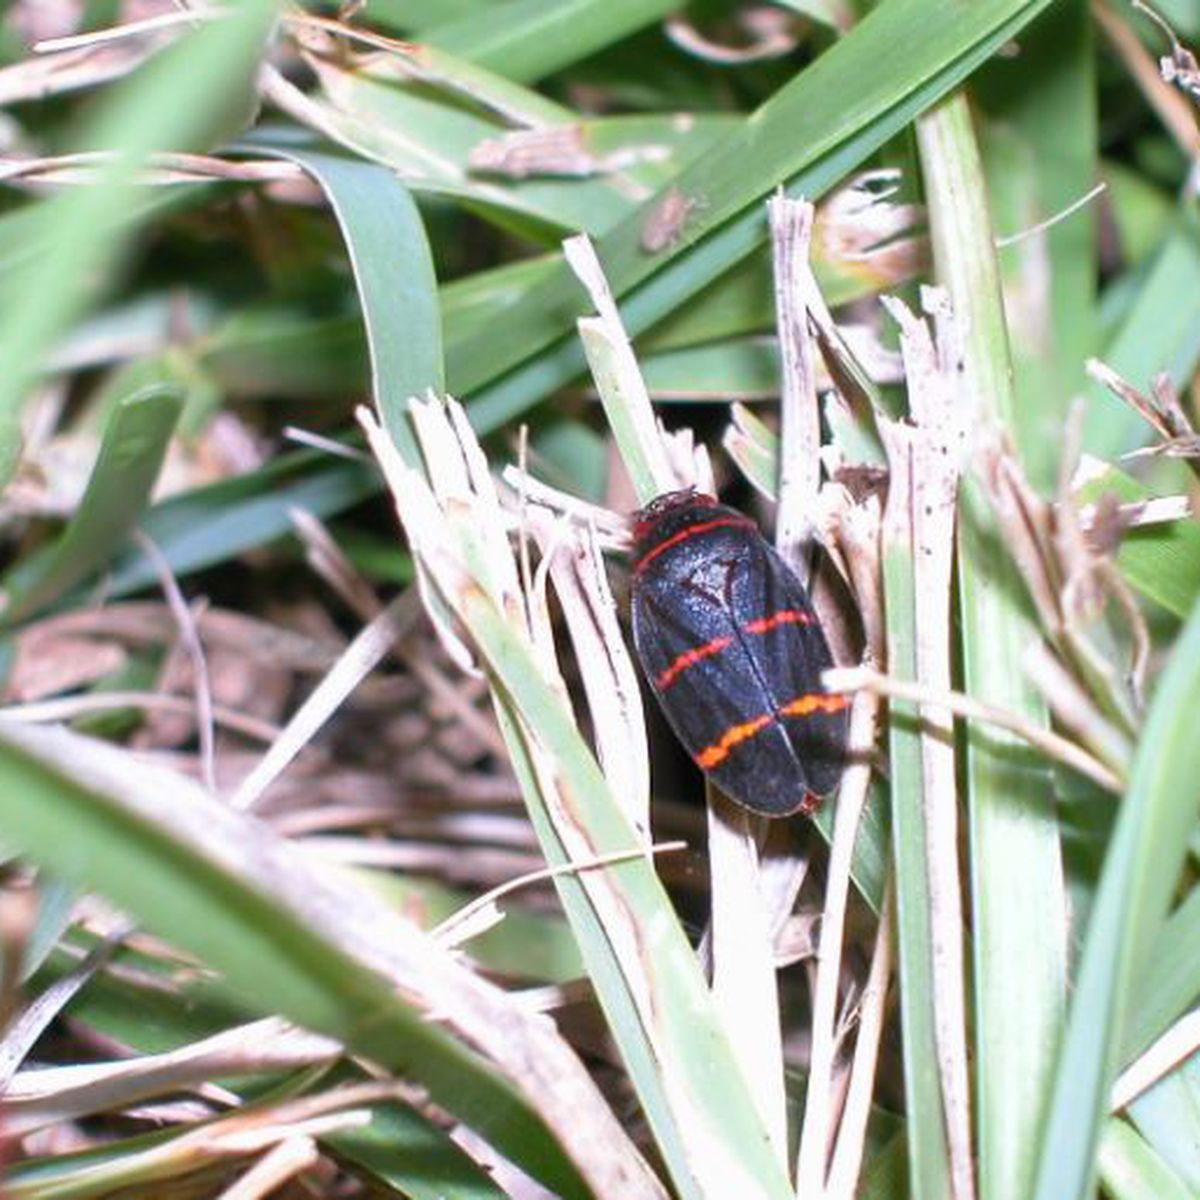 Fingernail-sized spittlebugs are causing big problems for Hawaii Island ranchers